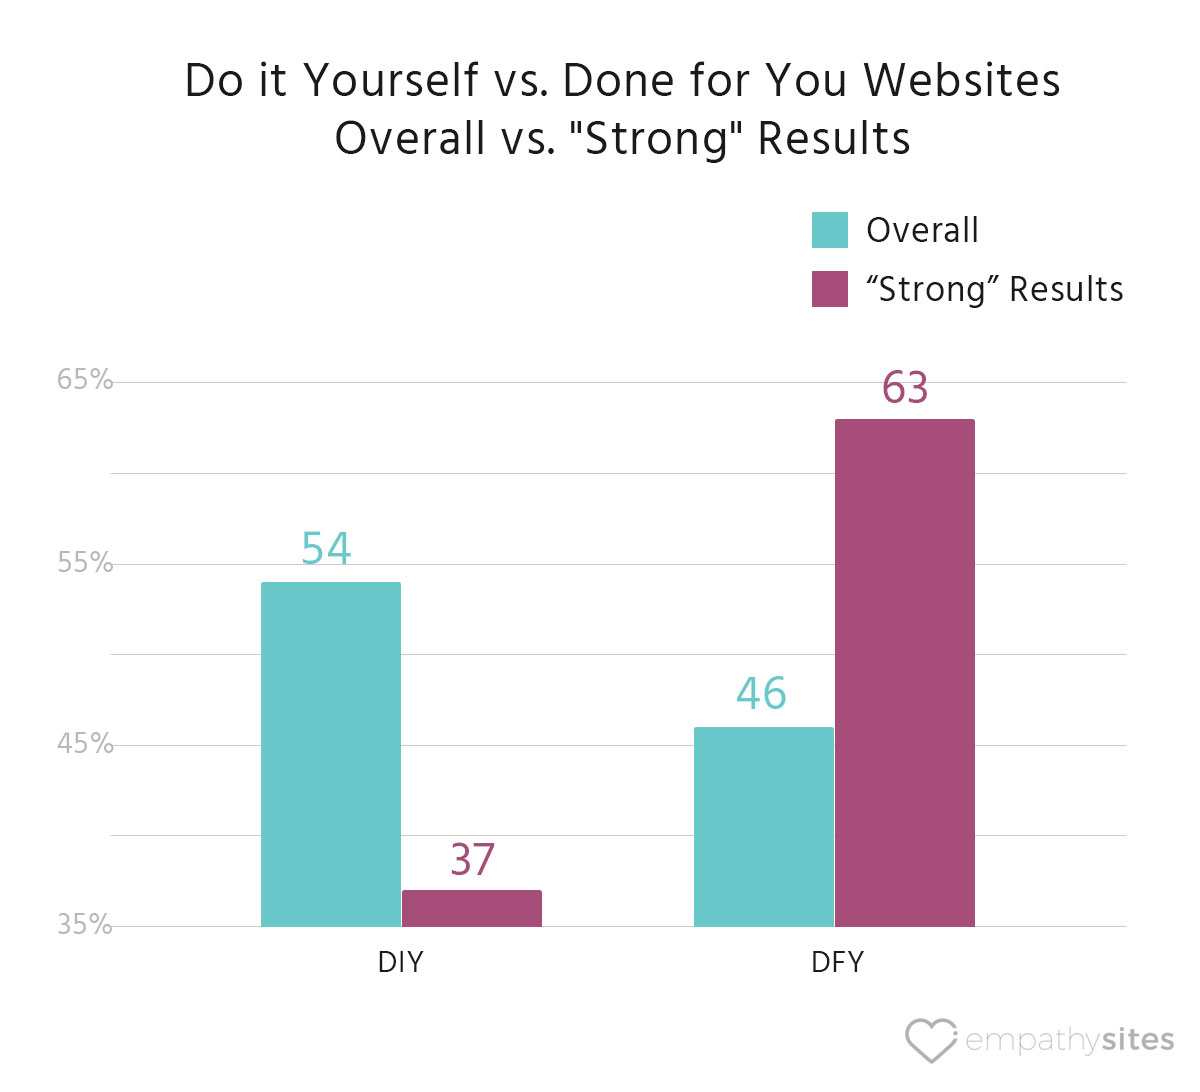 empathysites-therapist-website-data-diy-vs-dfy-overall-vs-strong